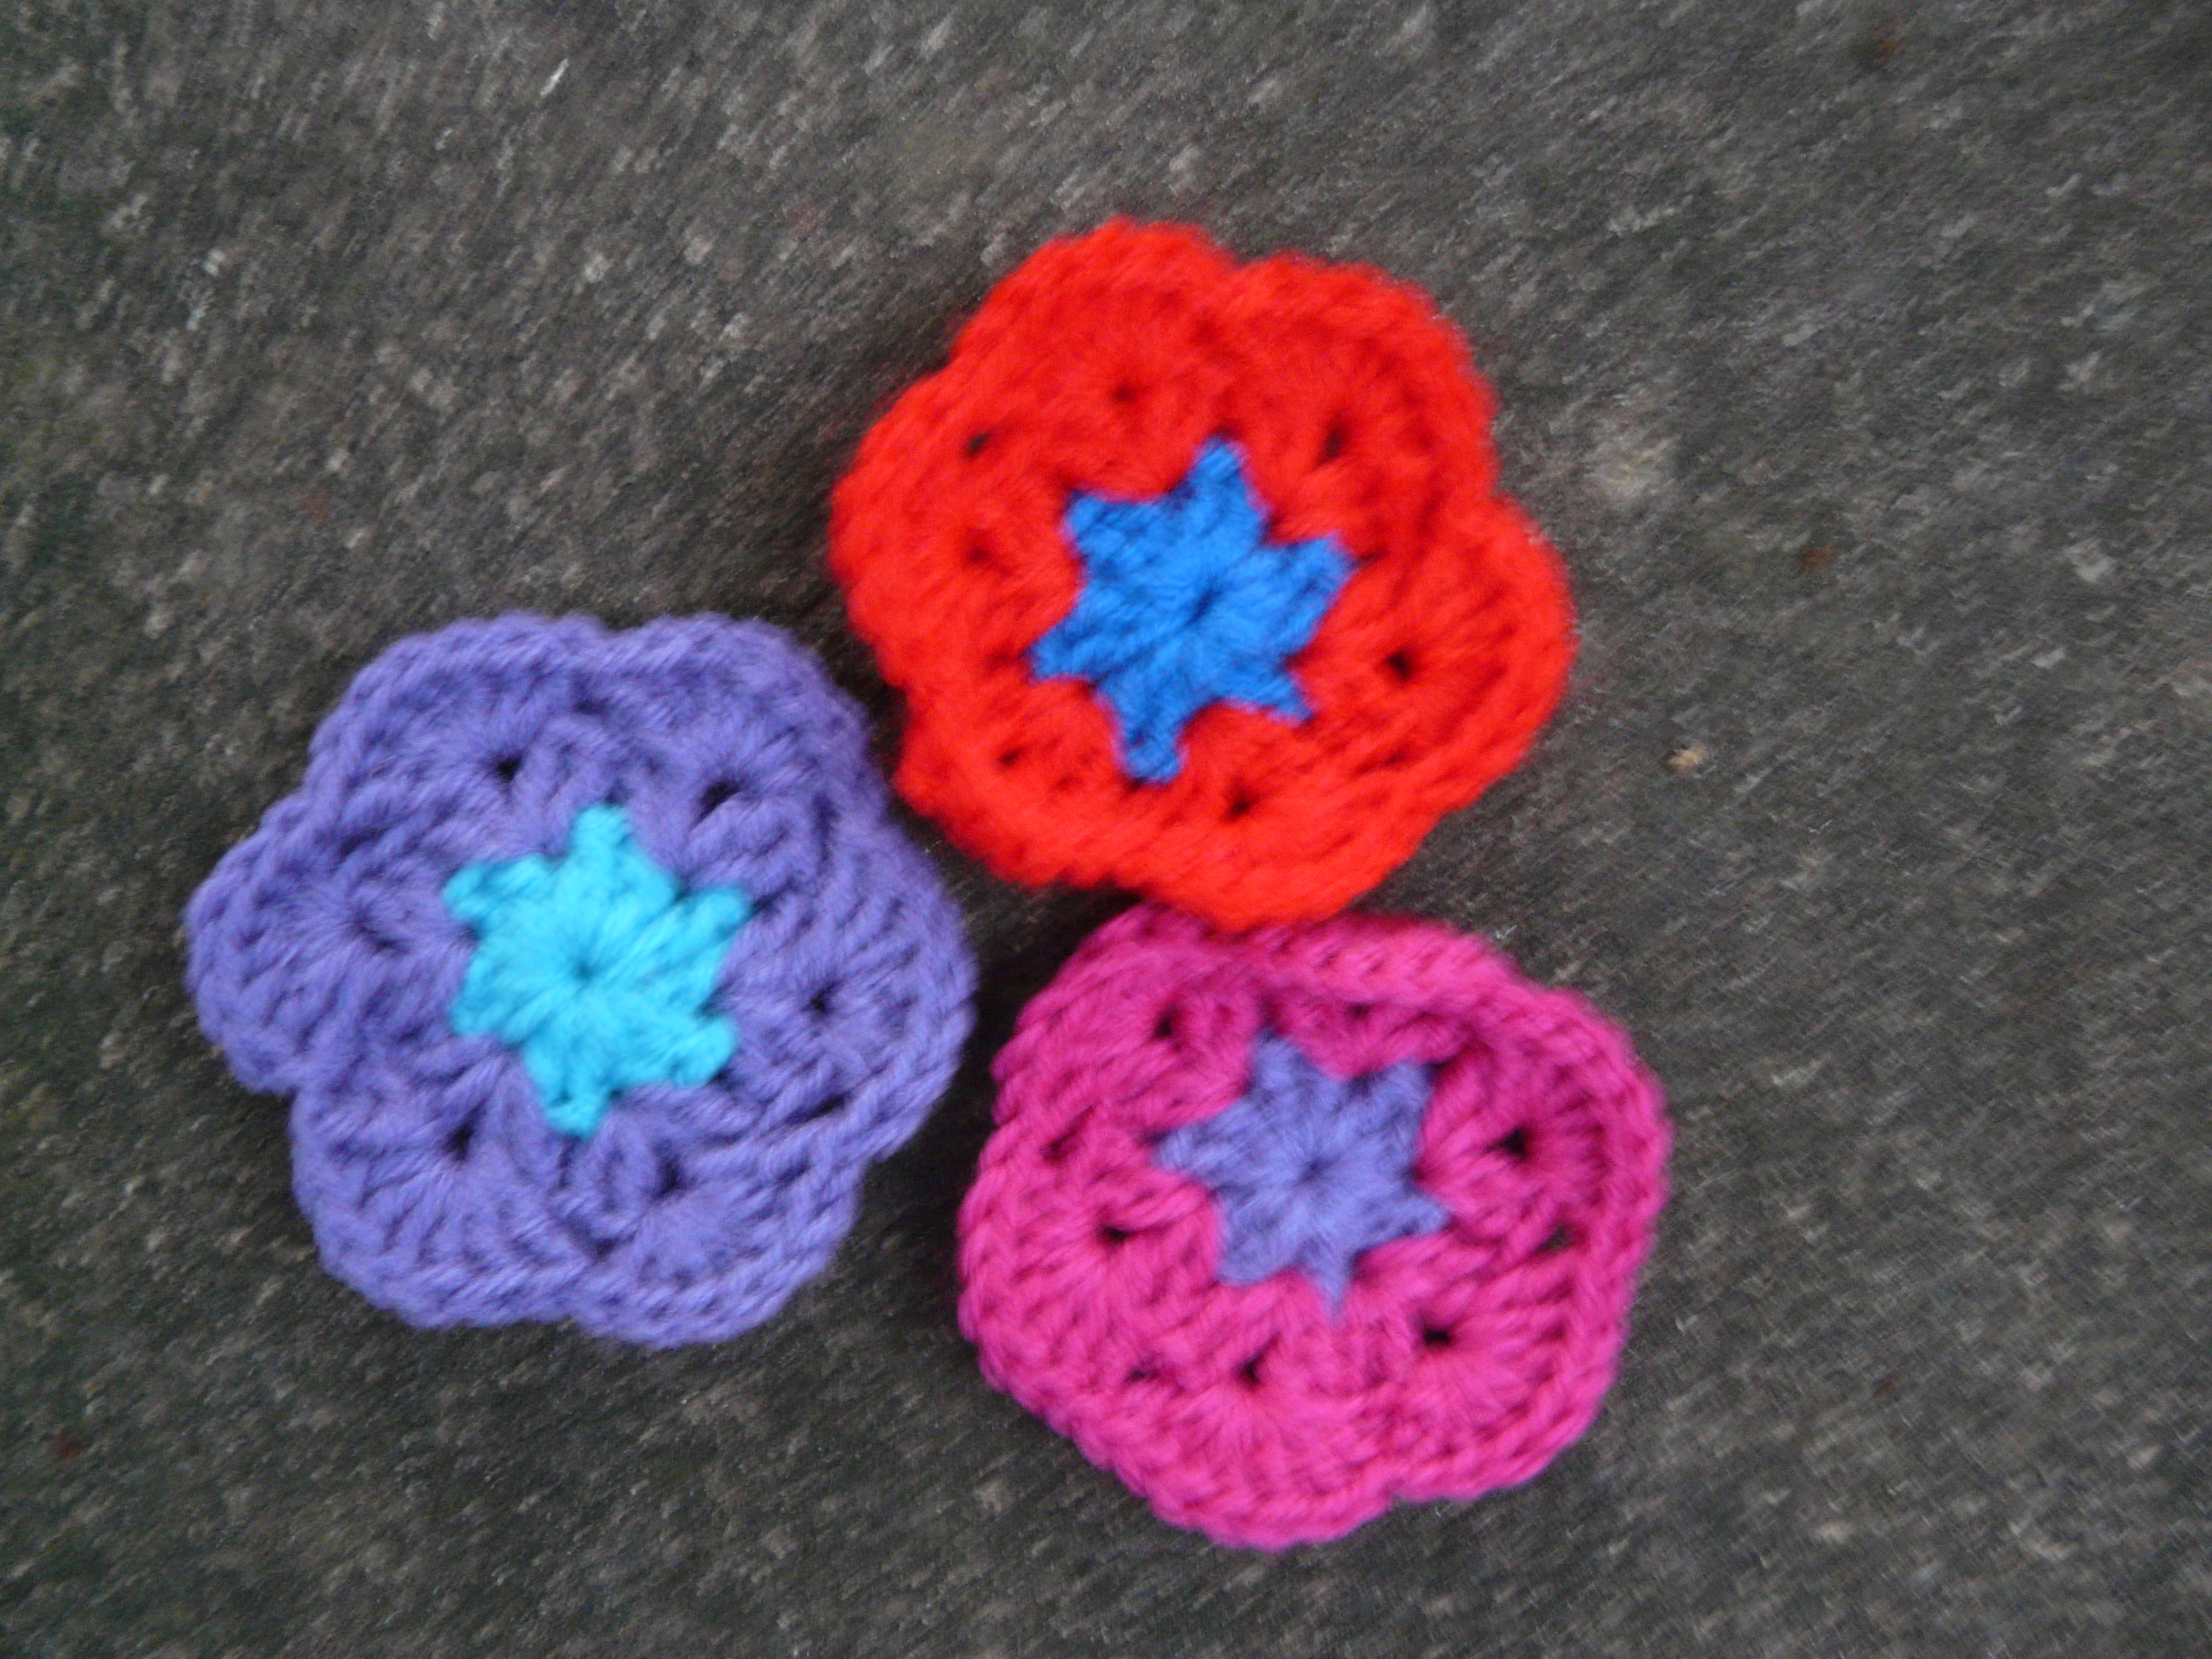 Crochet Flower Pattern for a 9 Petal Flower